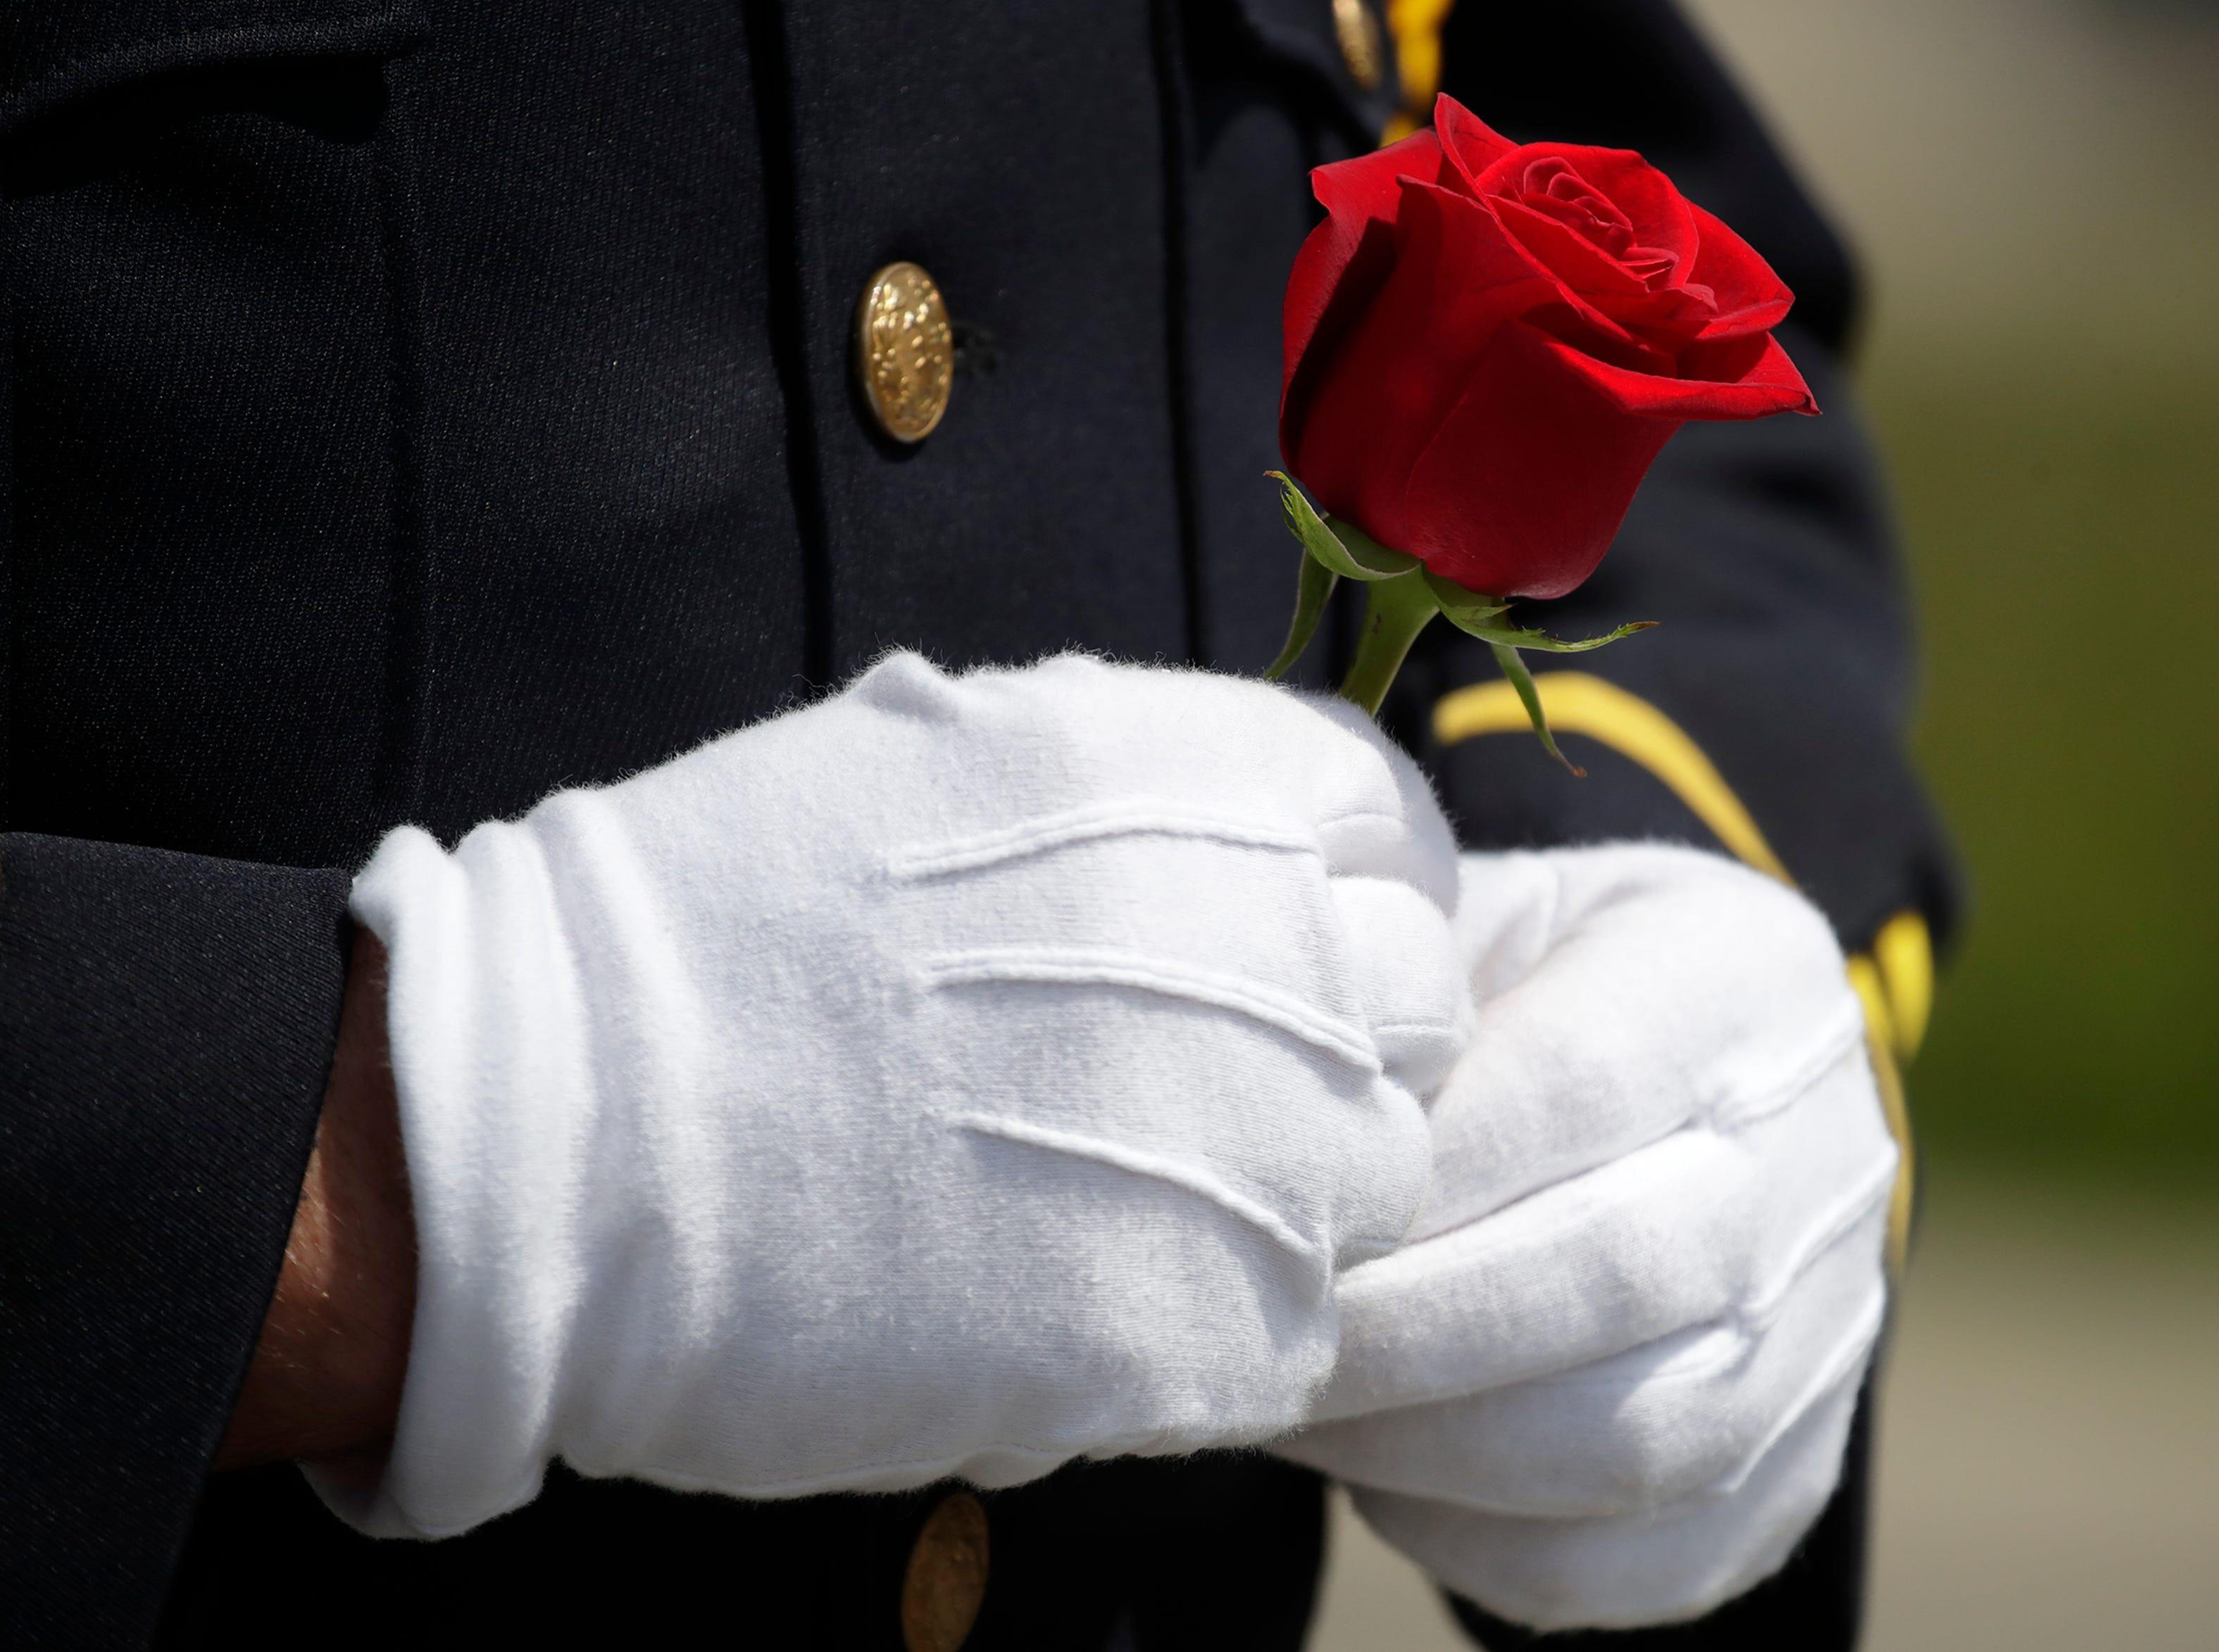 An Oshkosh police officer with the Oshkosh Police Honor Guard holds a rose that he will later place on a wreath in memoriam of an officer that died while on duty during their Law Enforcement Memorial Ceremony Wednesday, May 15, 2019, at the Oshkosh Police Department in Oshkosh, Wis. Danny Damiani/USA TODAY NETWORK-Wisconsin